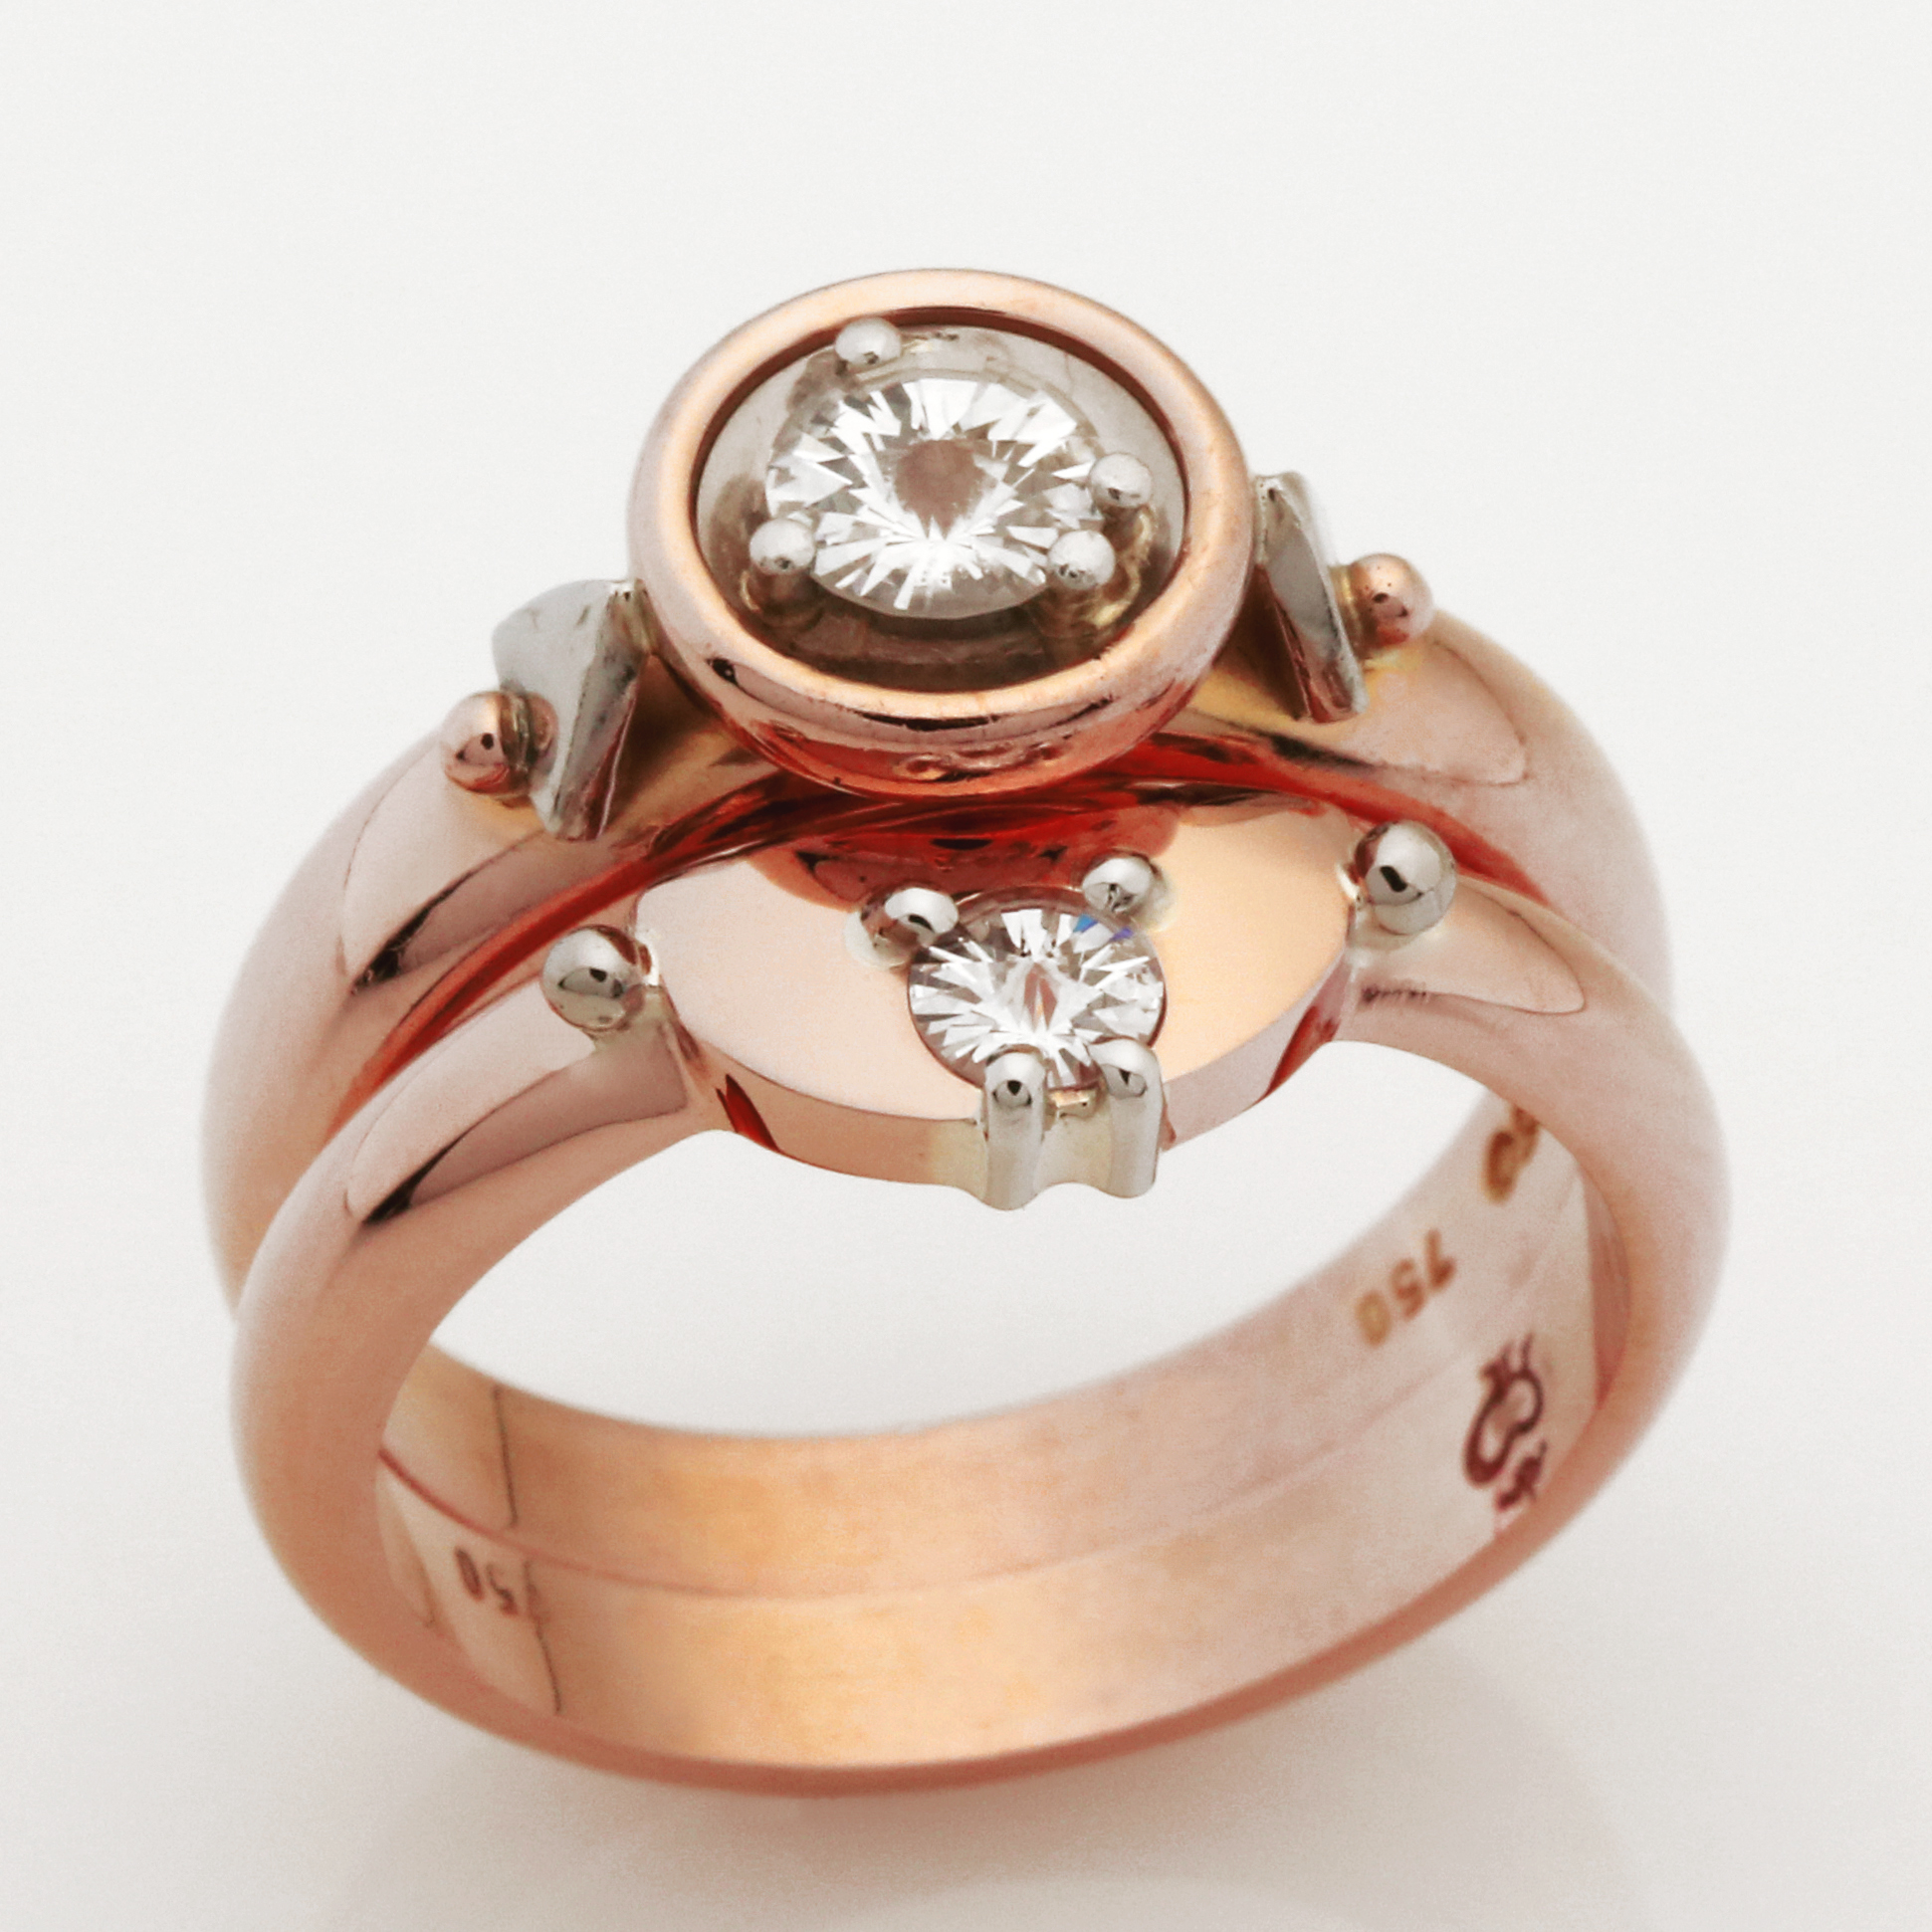 Ladies handmade 18ct rose gold and spirit diamond wedding ring